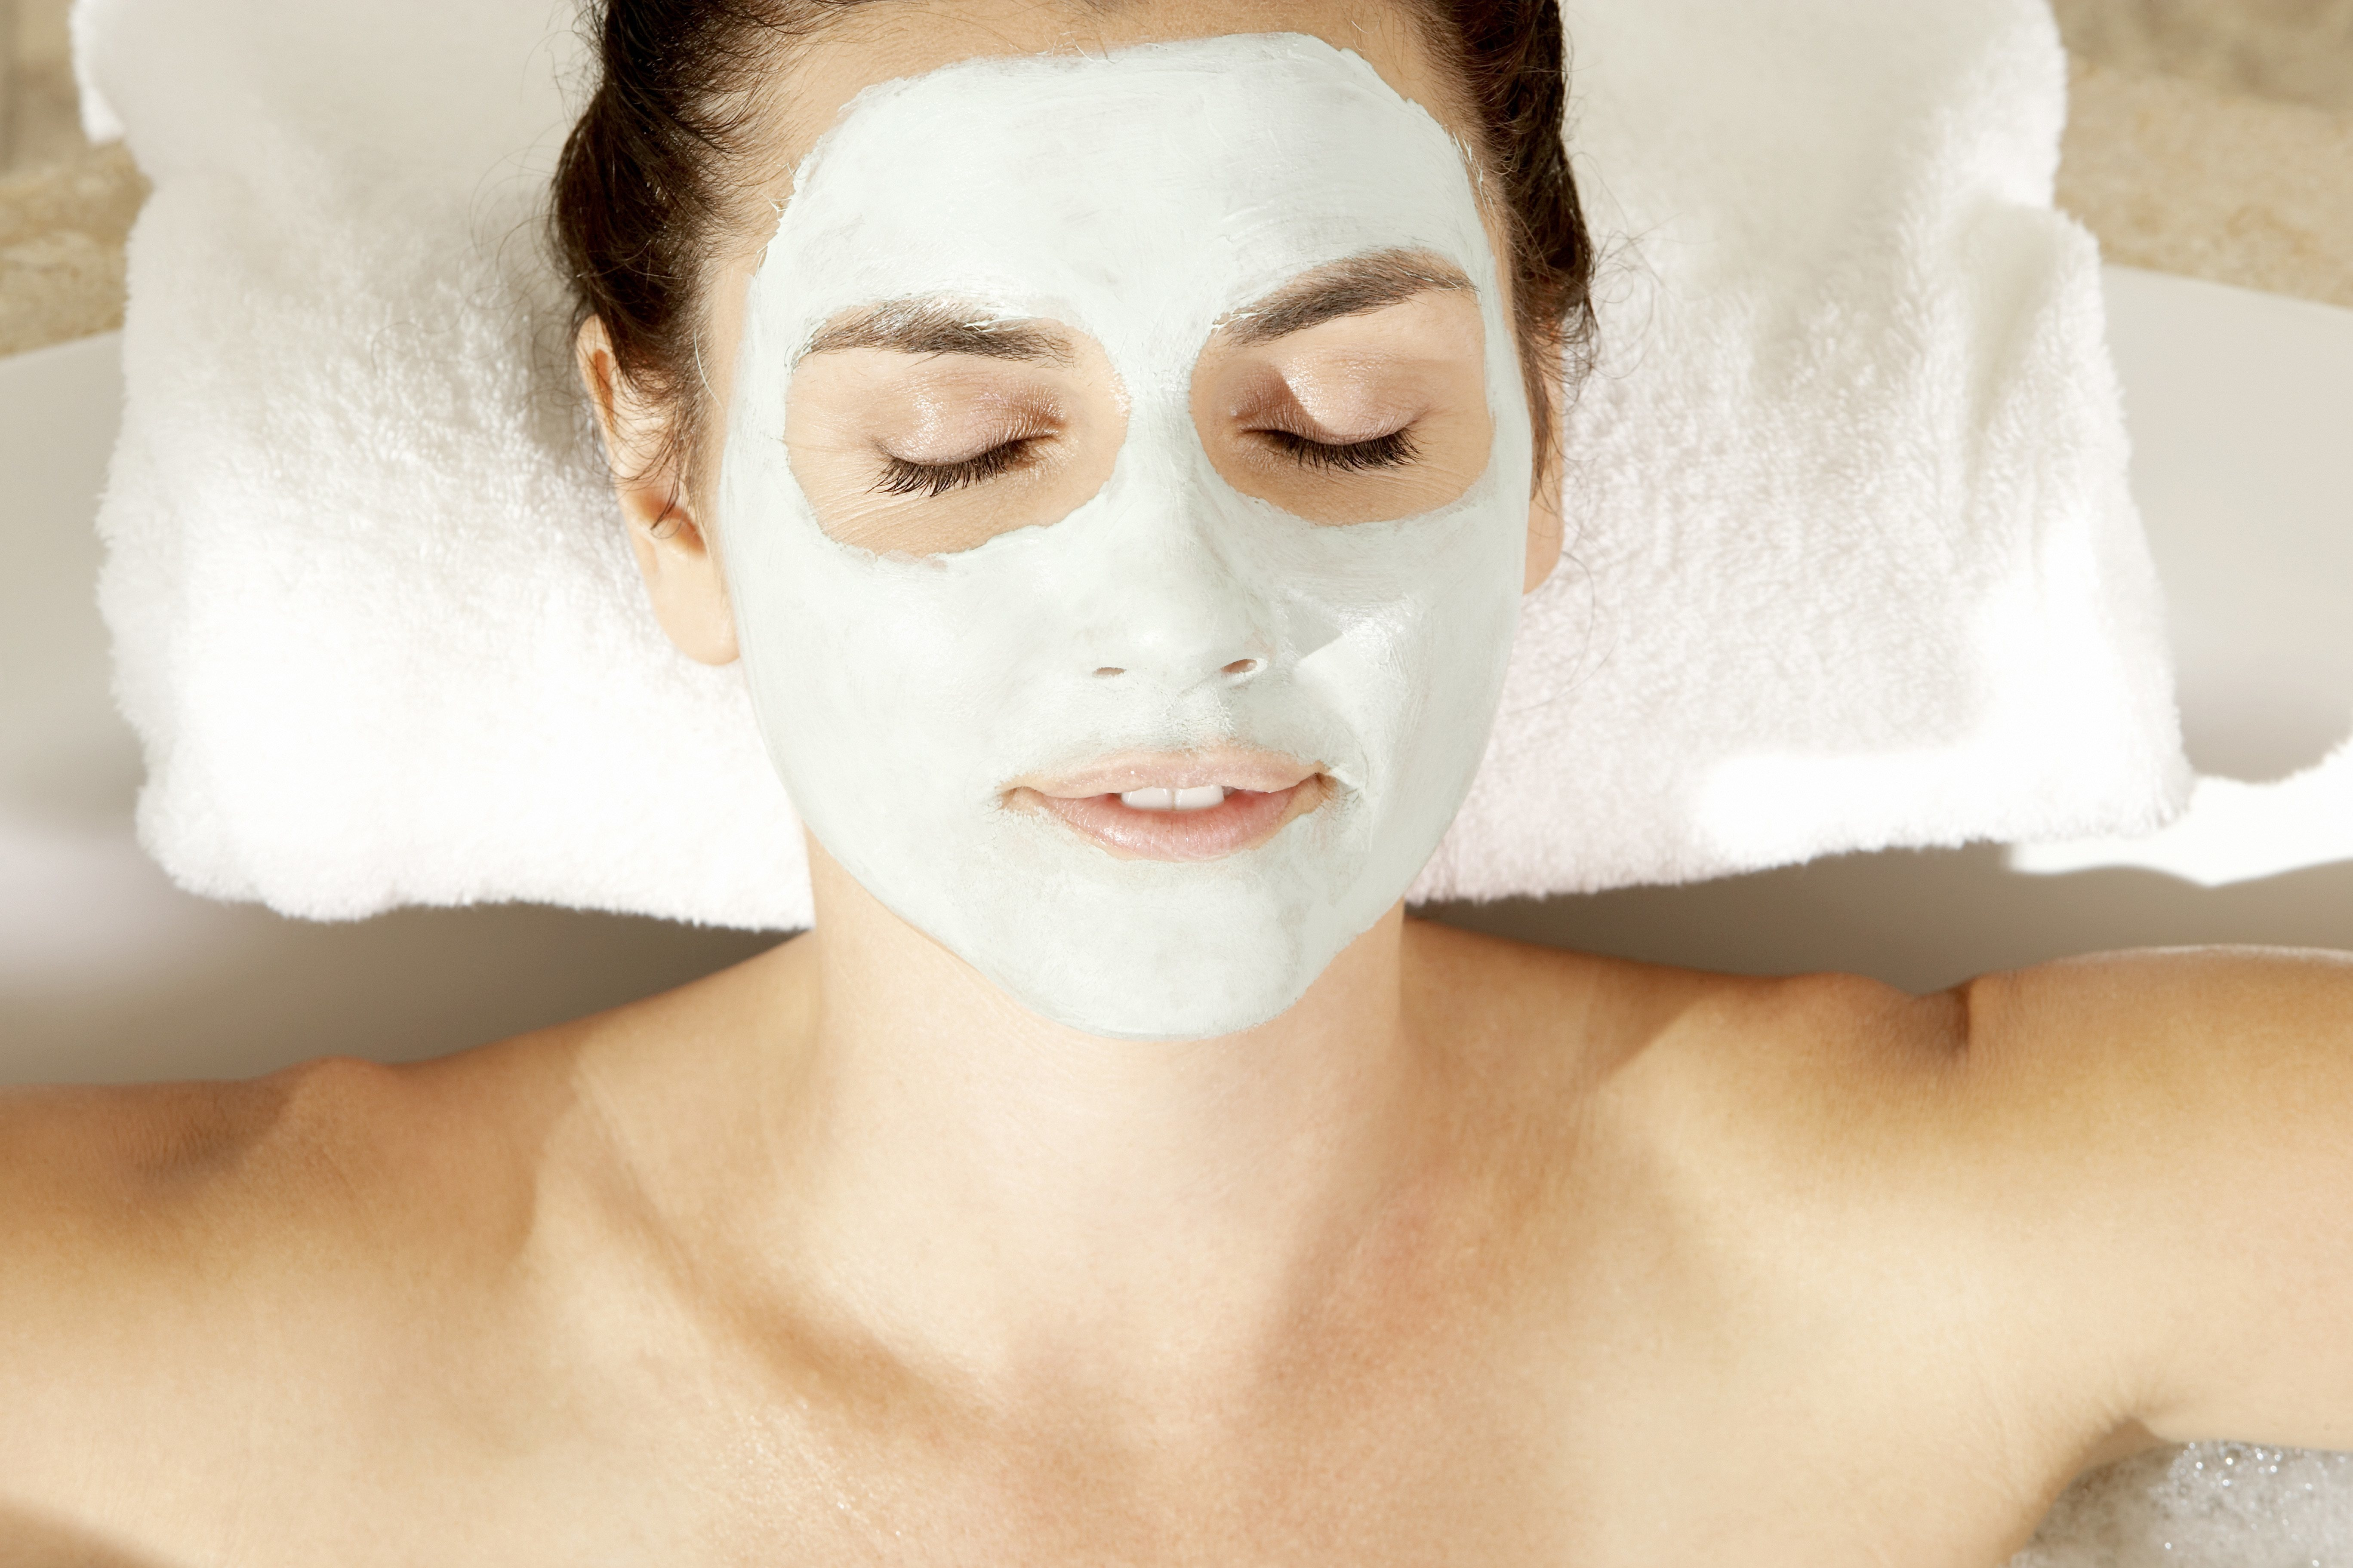 Dr. Shapiro's Skin Klinic carries top of the line at-home facial masks